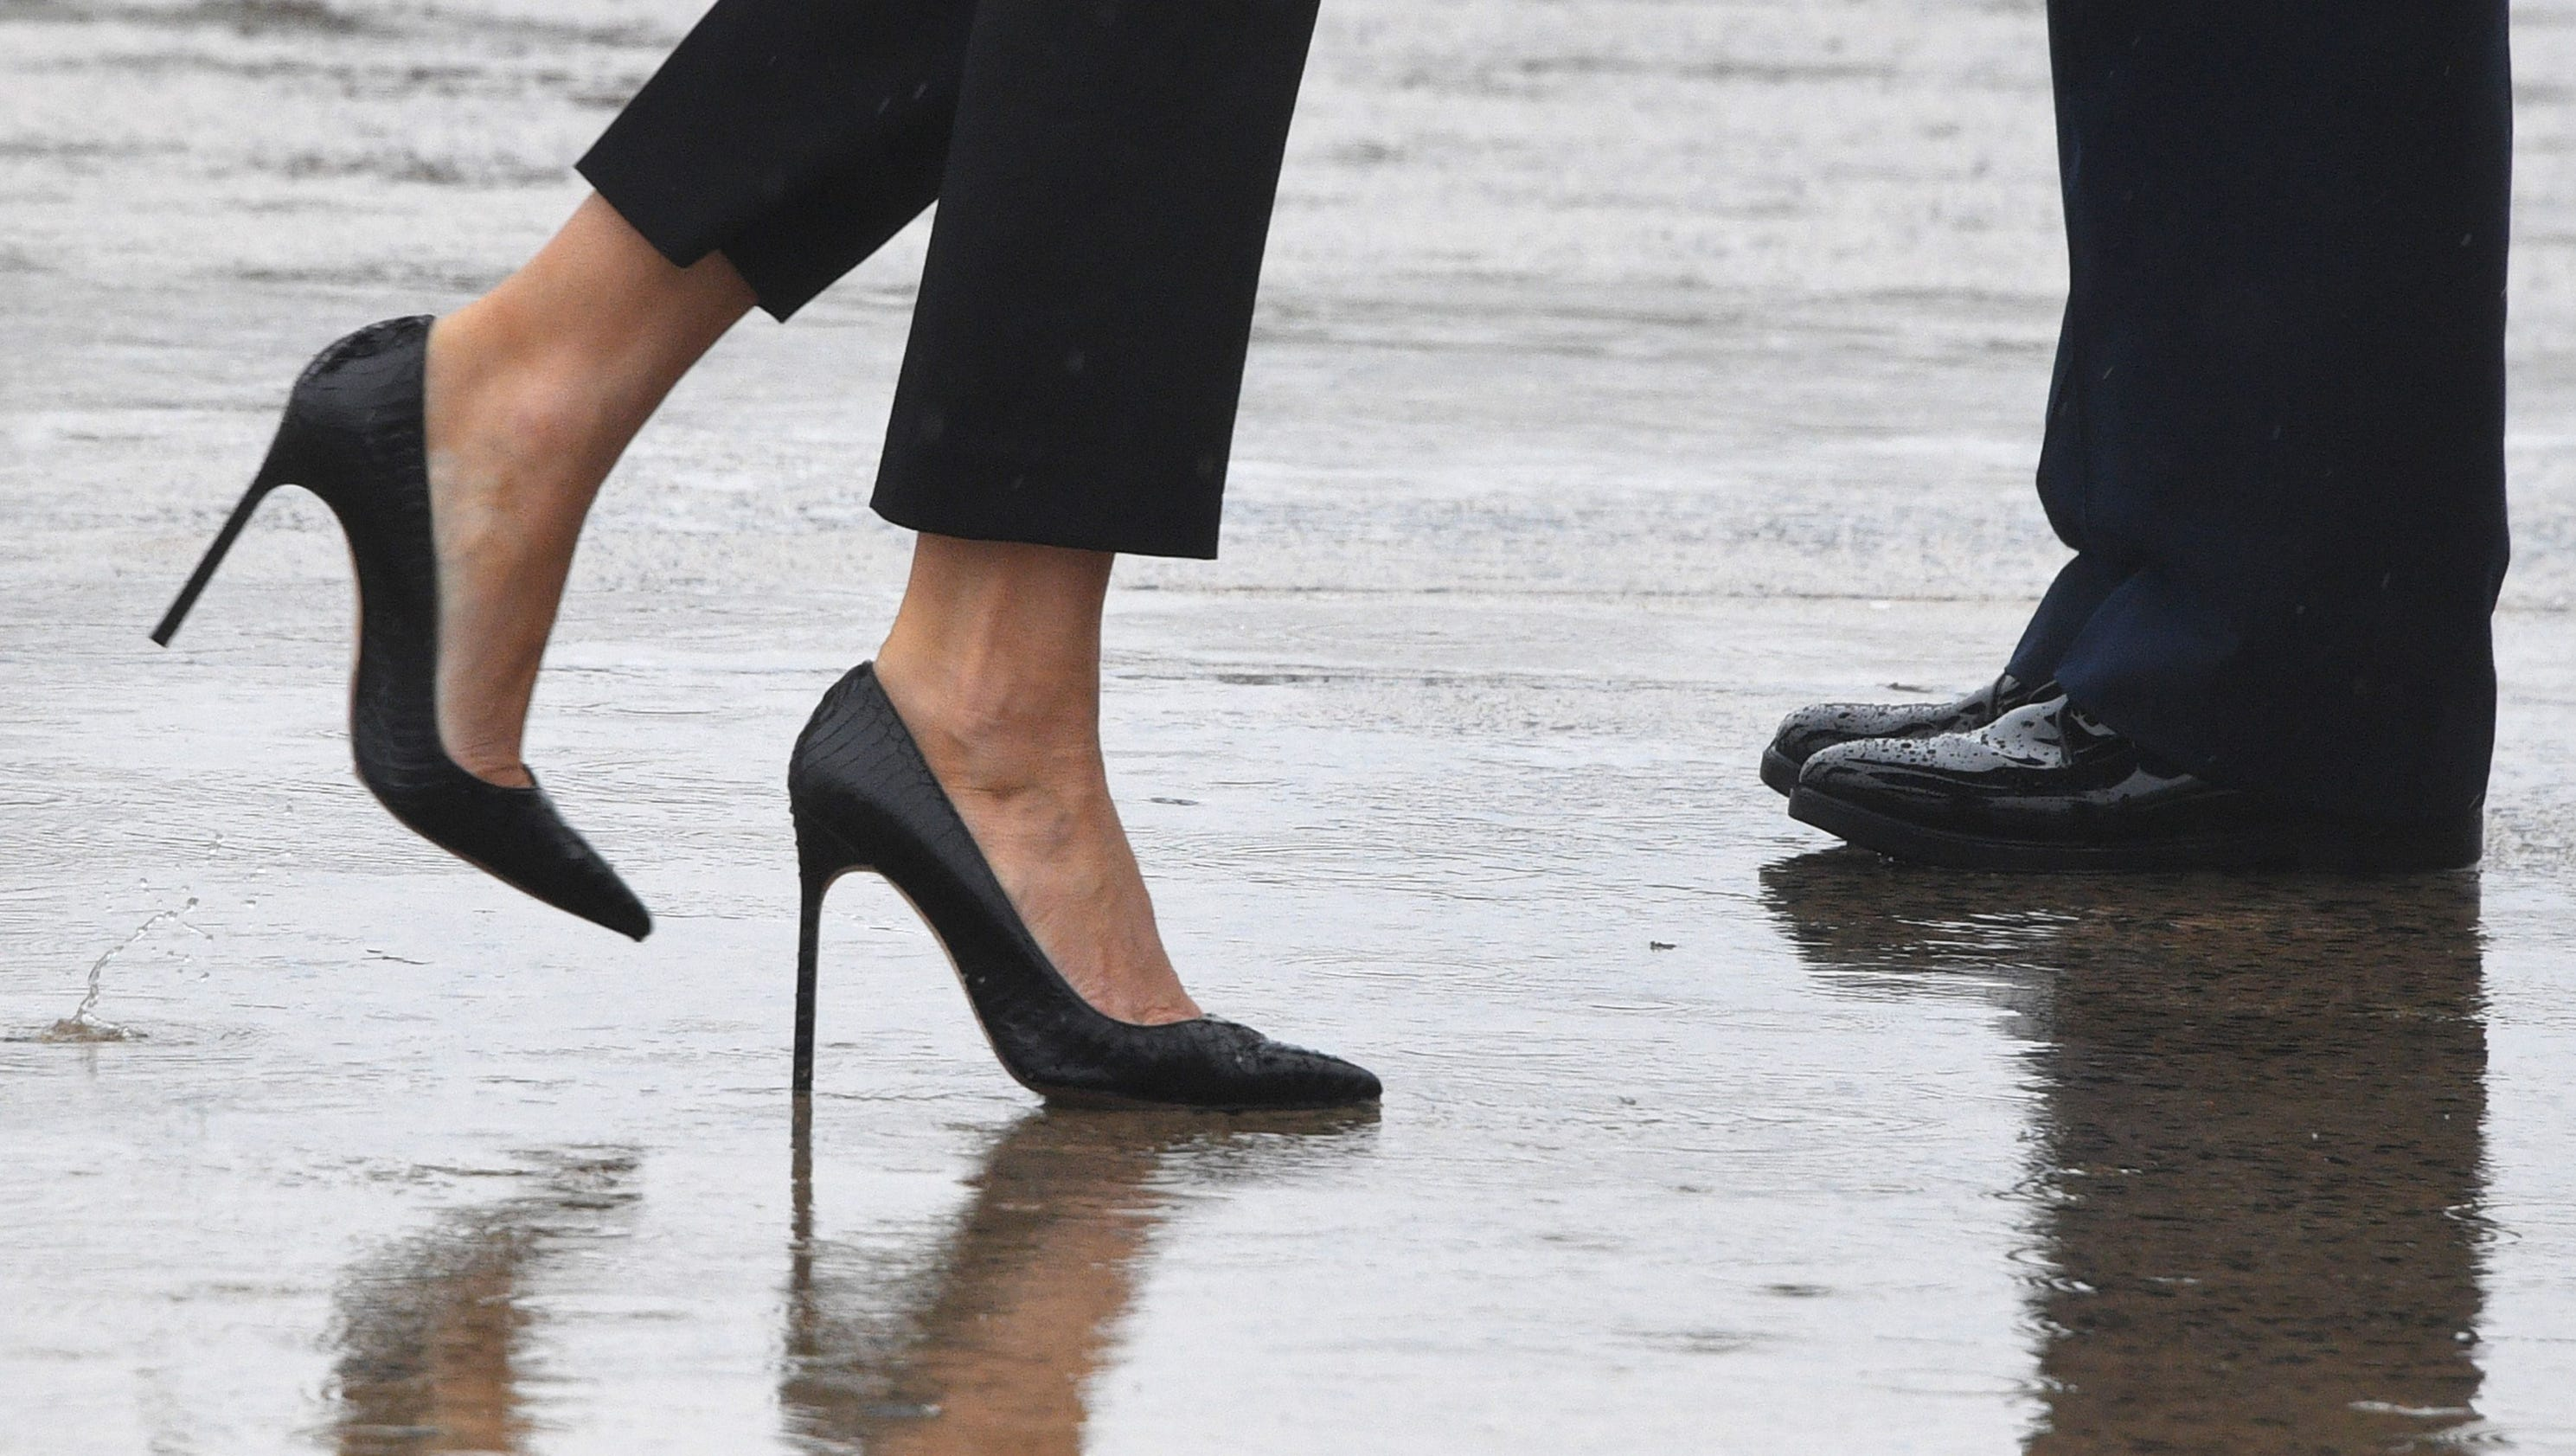 Melania Trump swaps stilettos for sneakers and a FLOTUS cap in flooded  Texas.